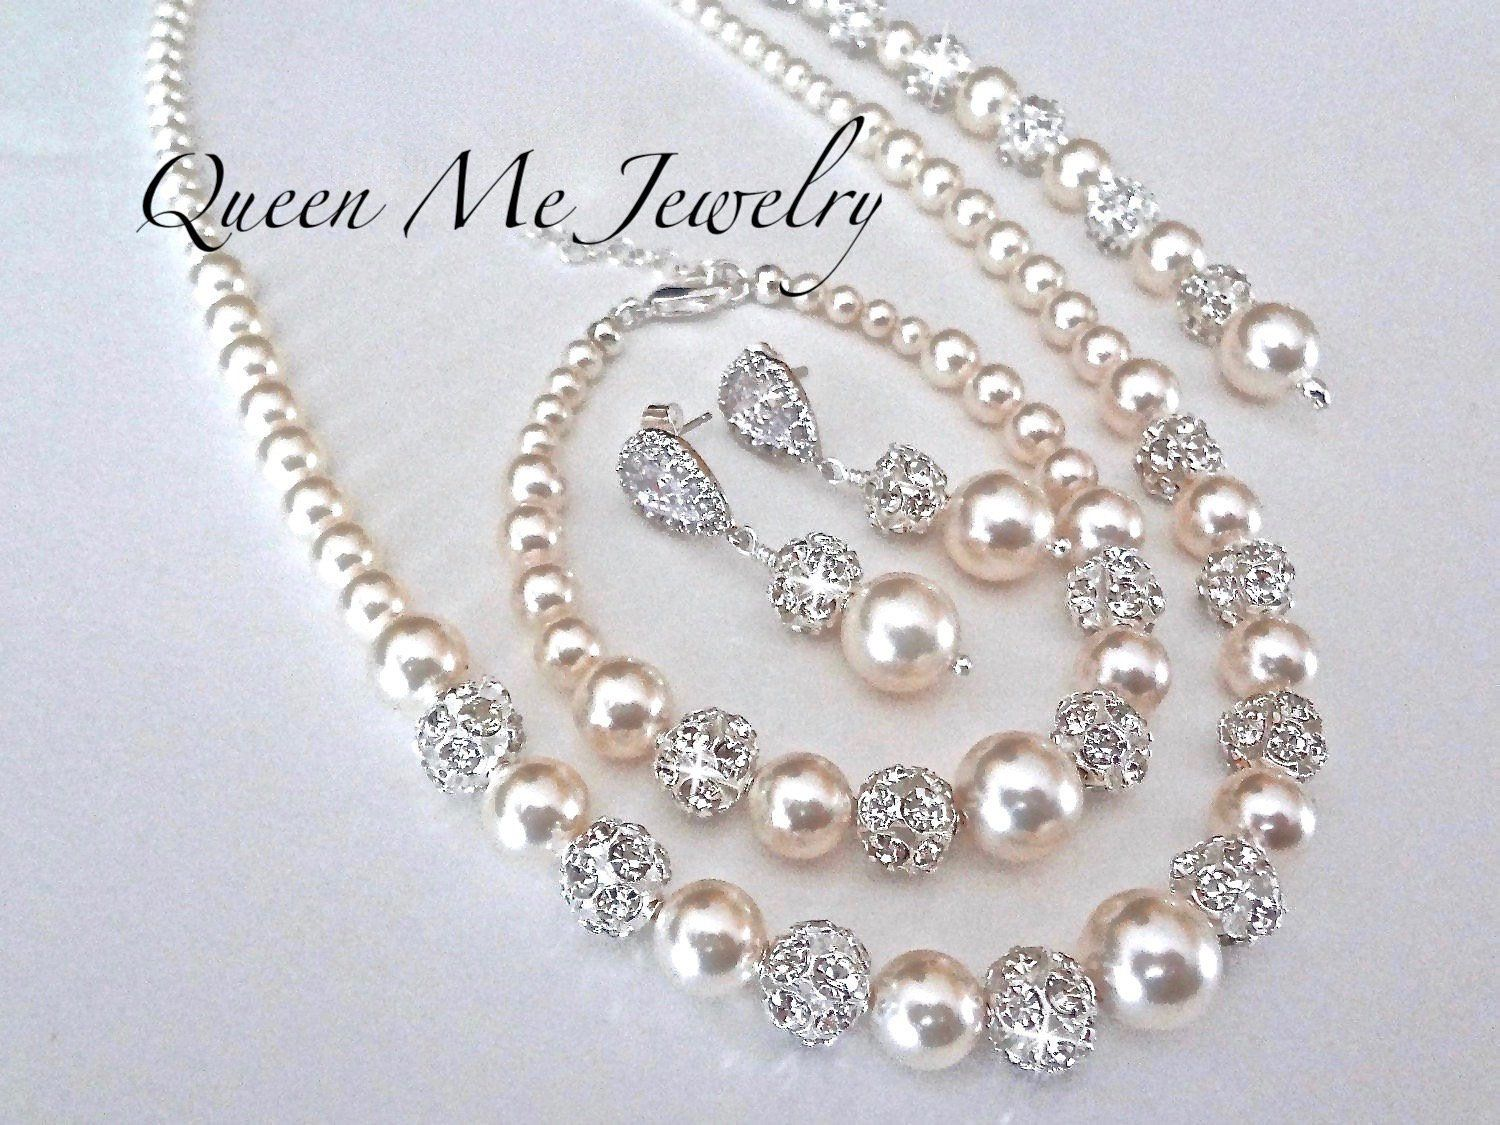 Strand Pearl Necklace Bridal Pearl Studs,Pearl Bridal Jewelry Set N202 Pearl Bridal Necklace and Earrings Set Pearl Choker Necklace